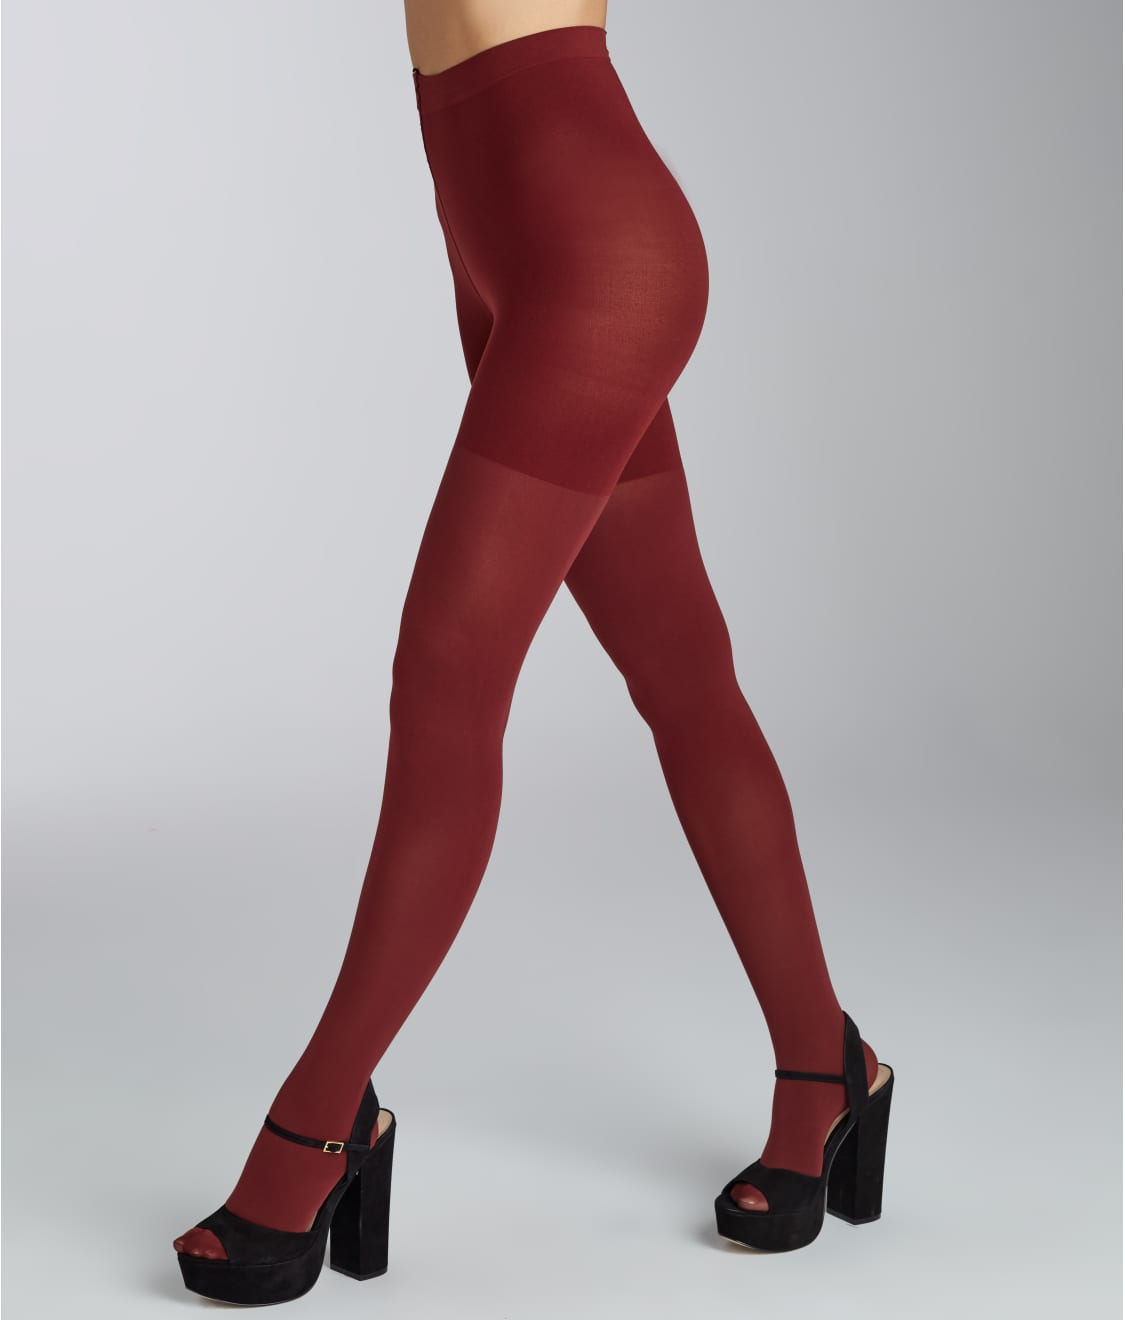 spanx luxe leg tights bare necessities fh3915